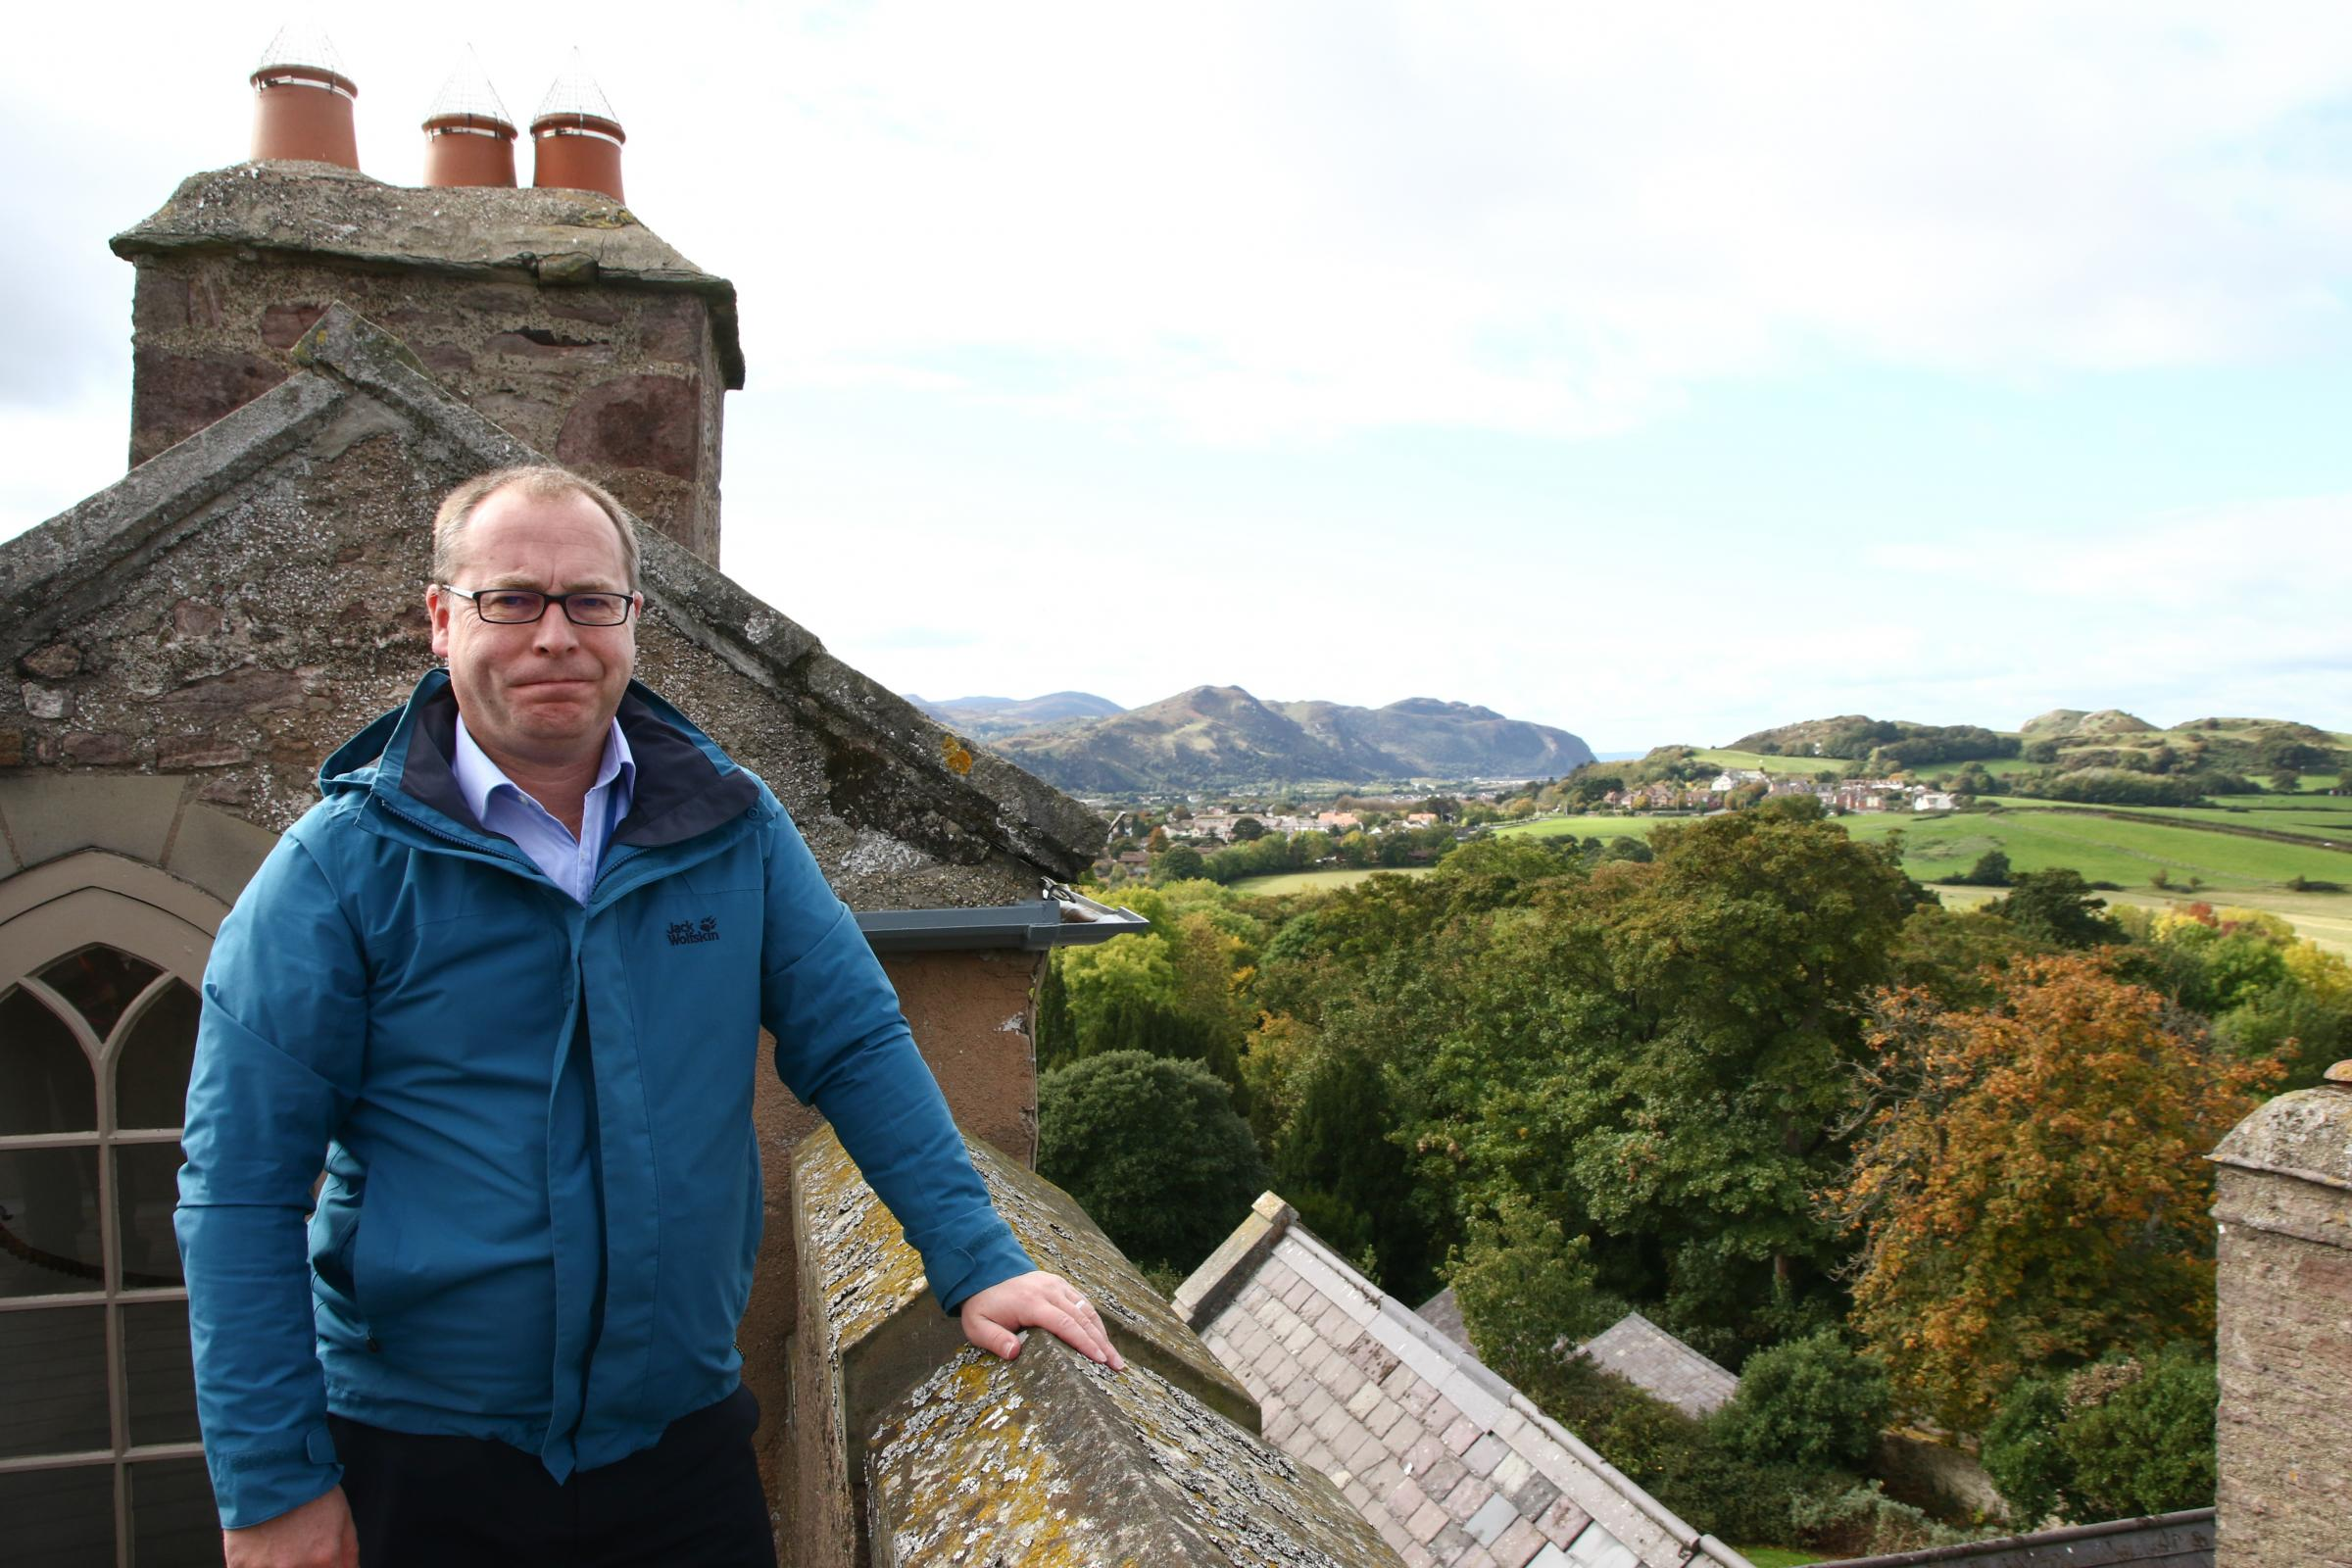 The planning inspector Mr Iwan Lloyd overlooking the site from Bodysgallen Hall